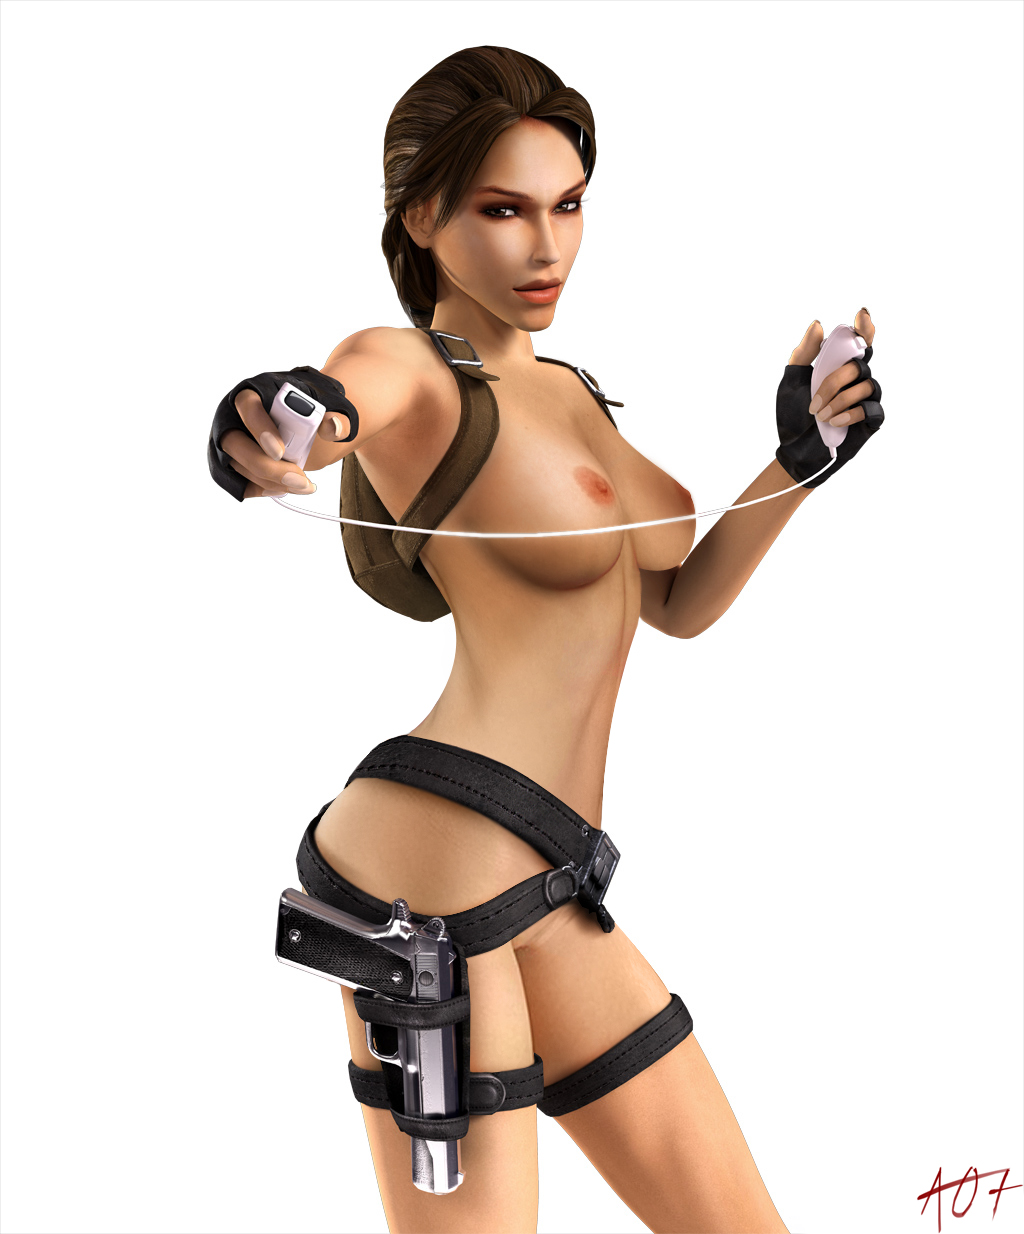 Tomb raider anniversary sex photo download nsfw scene